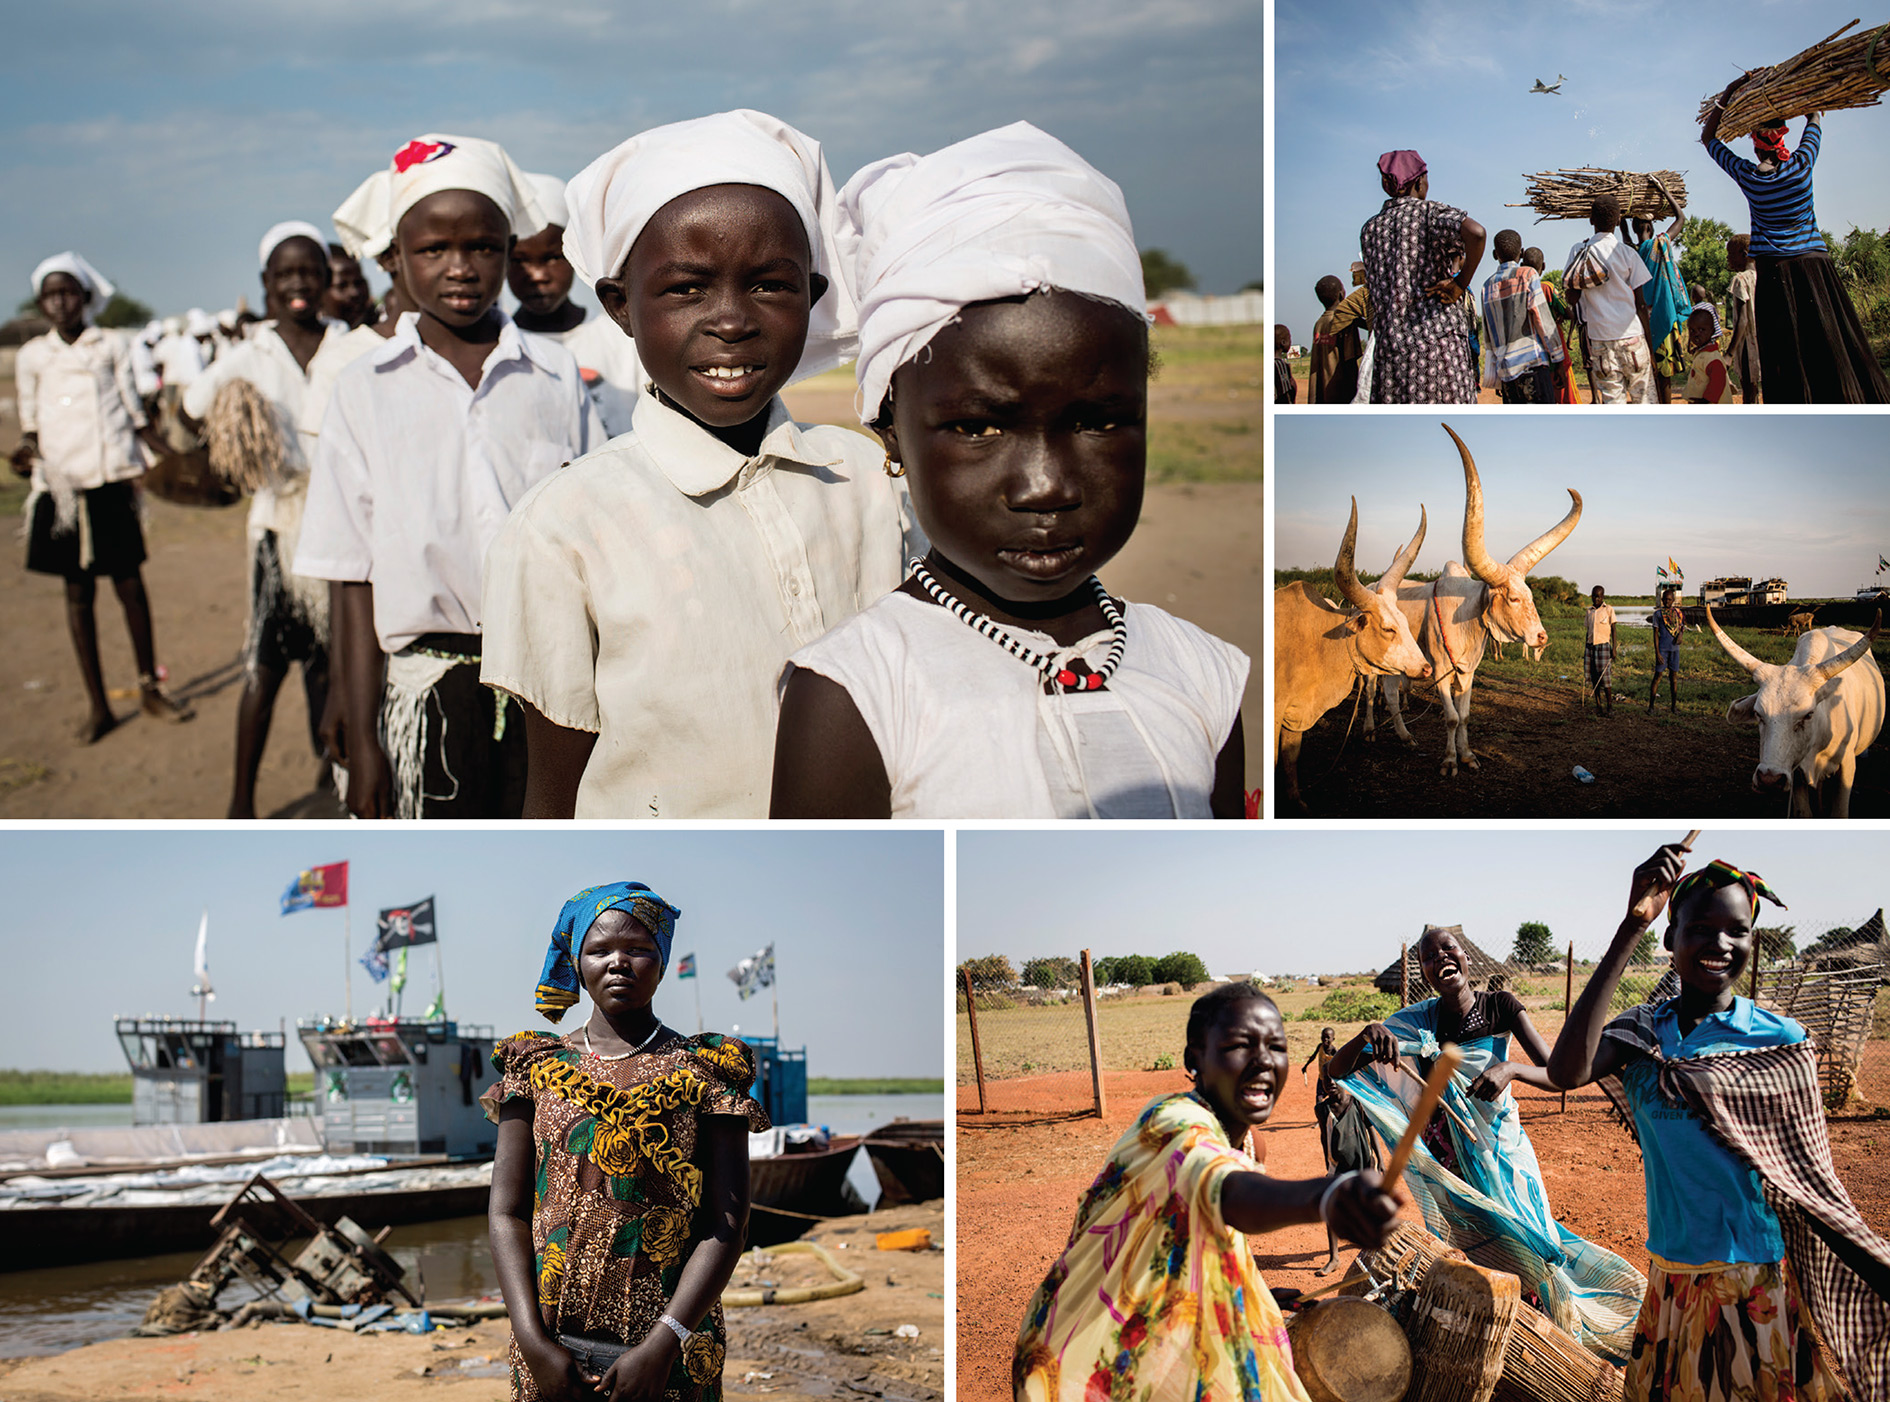 Clockwise from top left: A song-and-dance group prepare to perform at a church in the Mingkaman camp for internally displaced people (IdPs), which has often held as many as 100,000 people during the conflicts of the past few years; villagers in Unity State in the north watch a plane drop sacks of food aid; the boys looking after African-longhorned cattle are also from the Mingkaman camp, in Lakes State; the dinka women drumming have just had a training session aimed at making them aware that gender-based violence is a crime; Amer Agoot is pictured at the river port of Bor, having been forced to flee an IdP camp when men invaded her hut and robbed her of the little she had left.